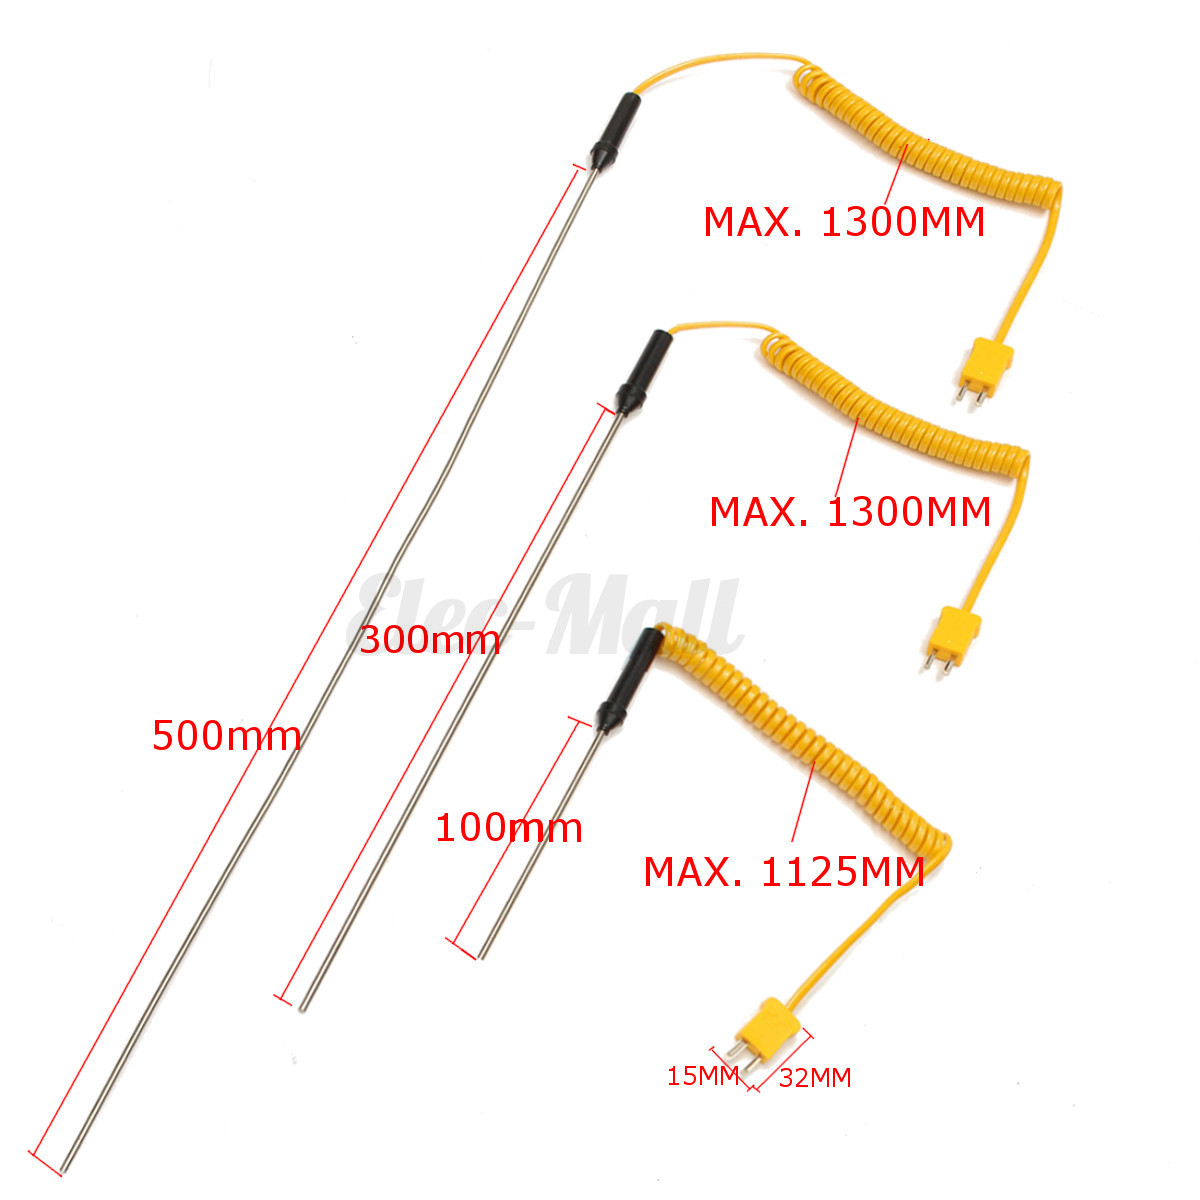 Thermocouple Controller Wiring Thermocouple Free Image About Wiring  #C29009